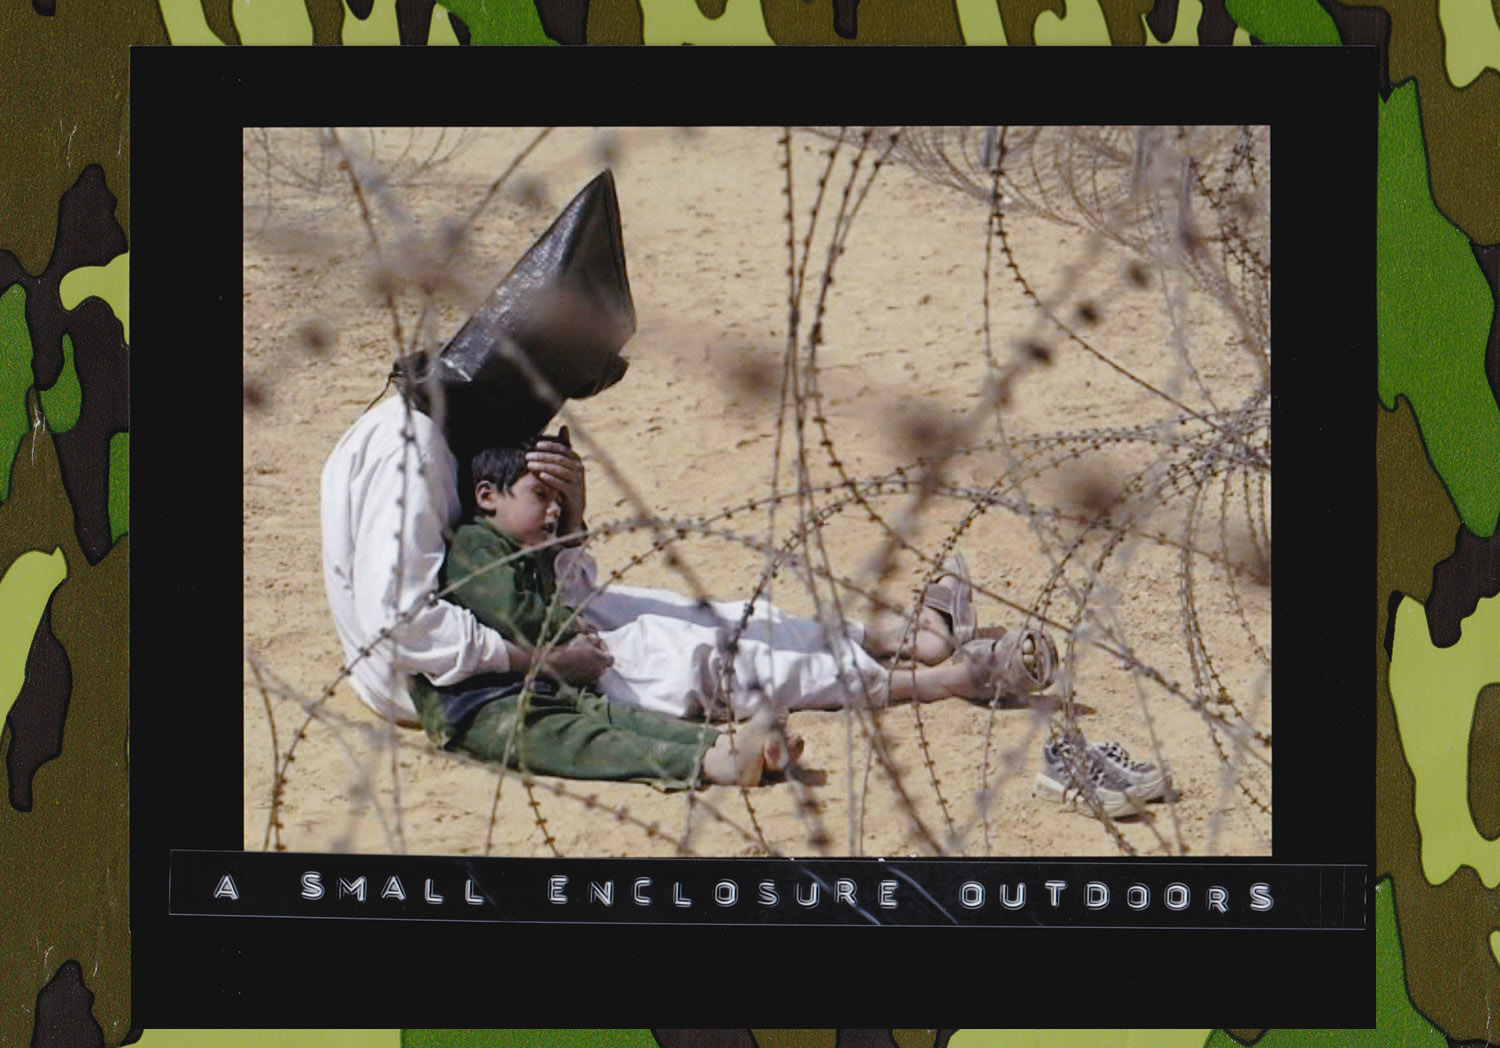 An Iraqi prisoner of war with his 4-year-old son at a regrouping center for POWs captured by the U.S. Army 101st Airborne Division near An Najaf, Iraq. March 31, 2003. (Photo: Jean-Marc Bouju/Associated Press)